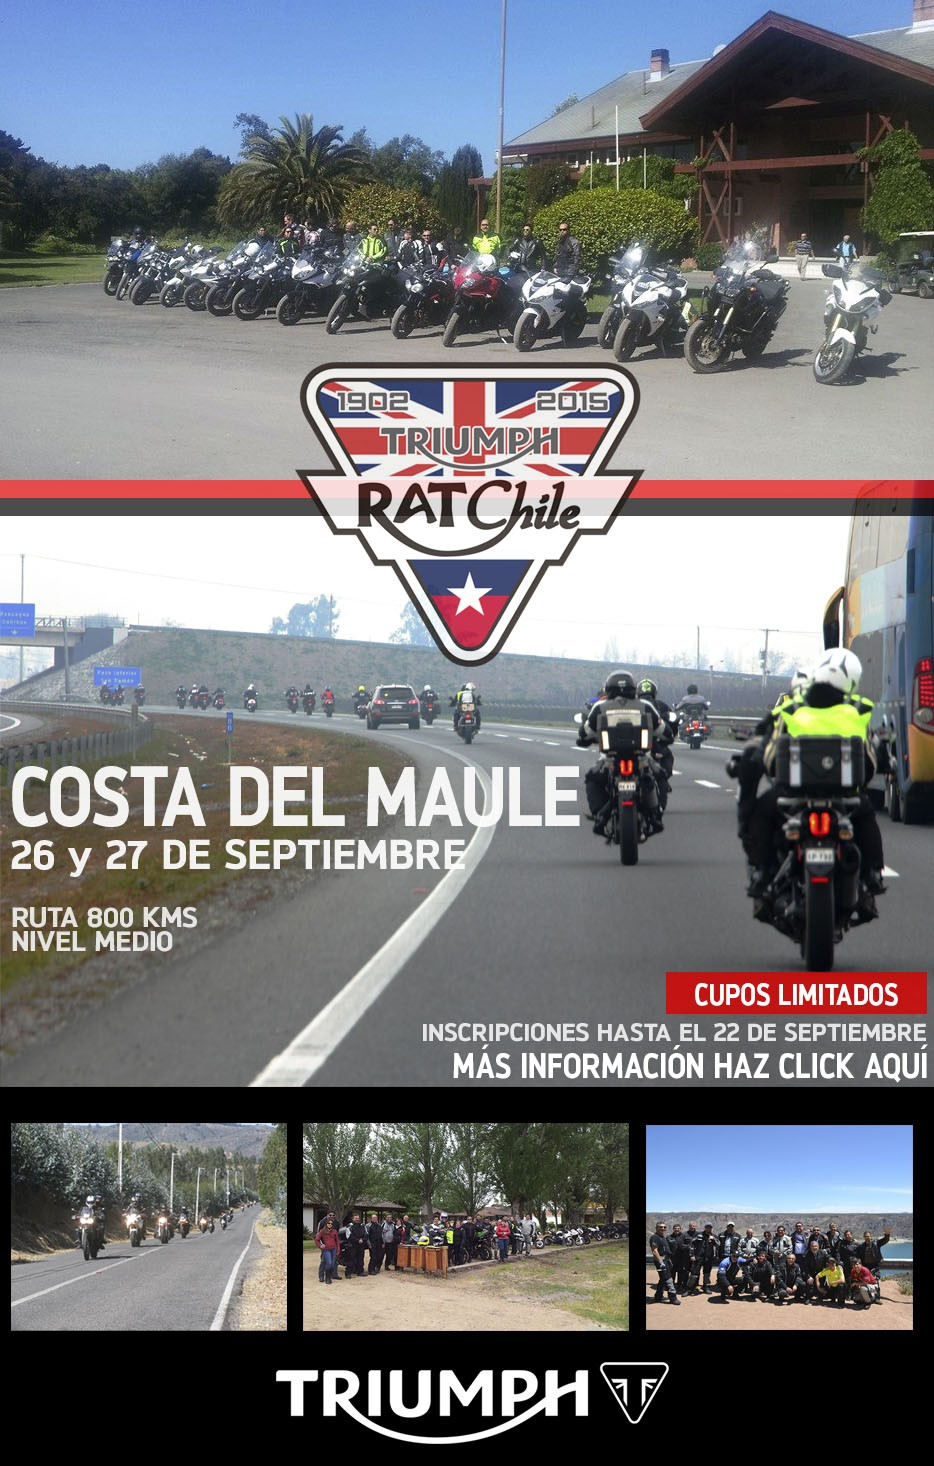 Tour Triumph RAT Costa del Maule 2015